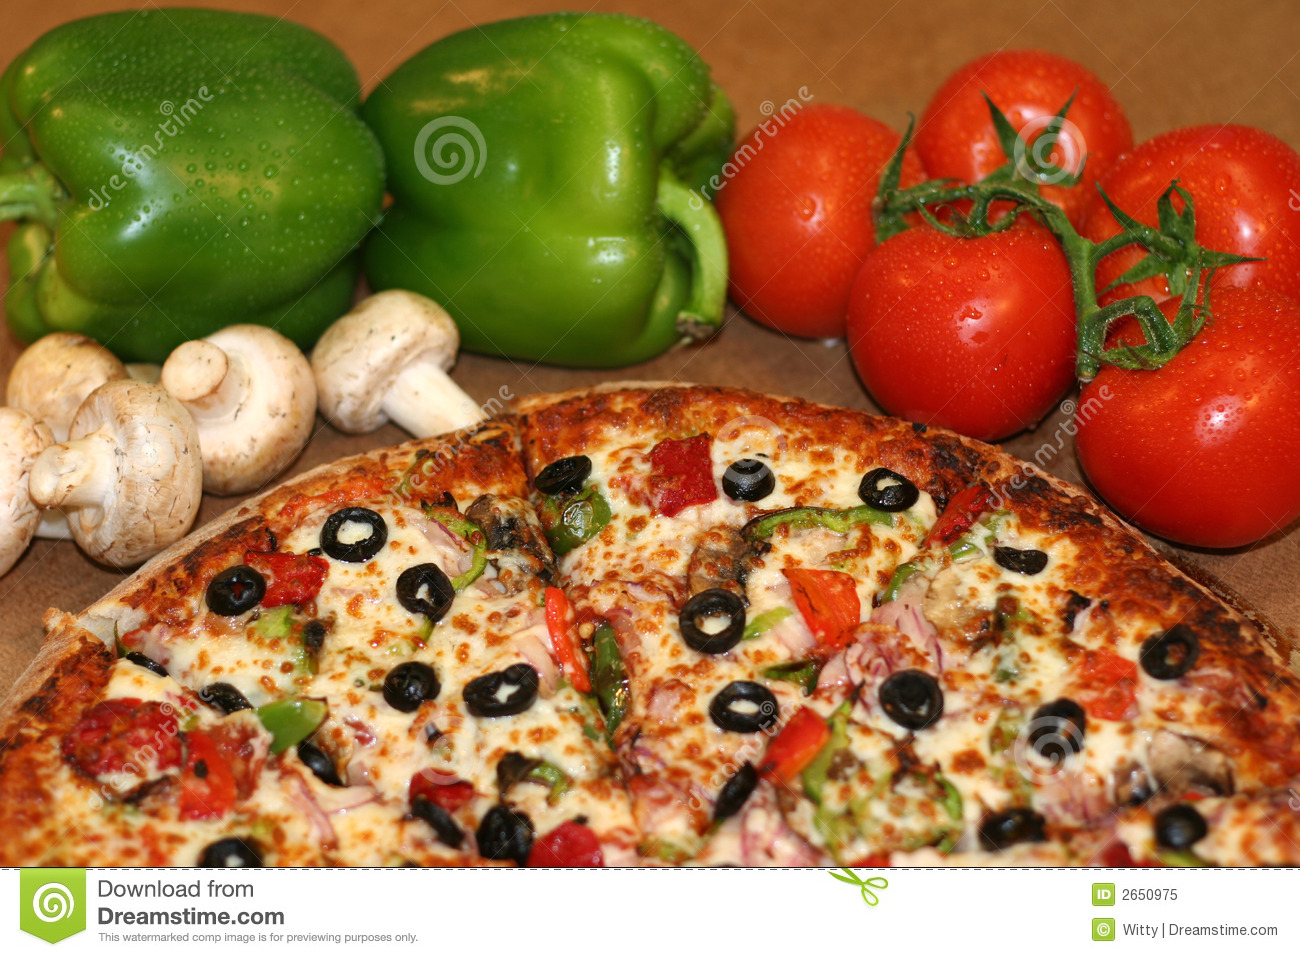 Pizza And Fresh Ingredients Stock Image - Image of tomato ...